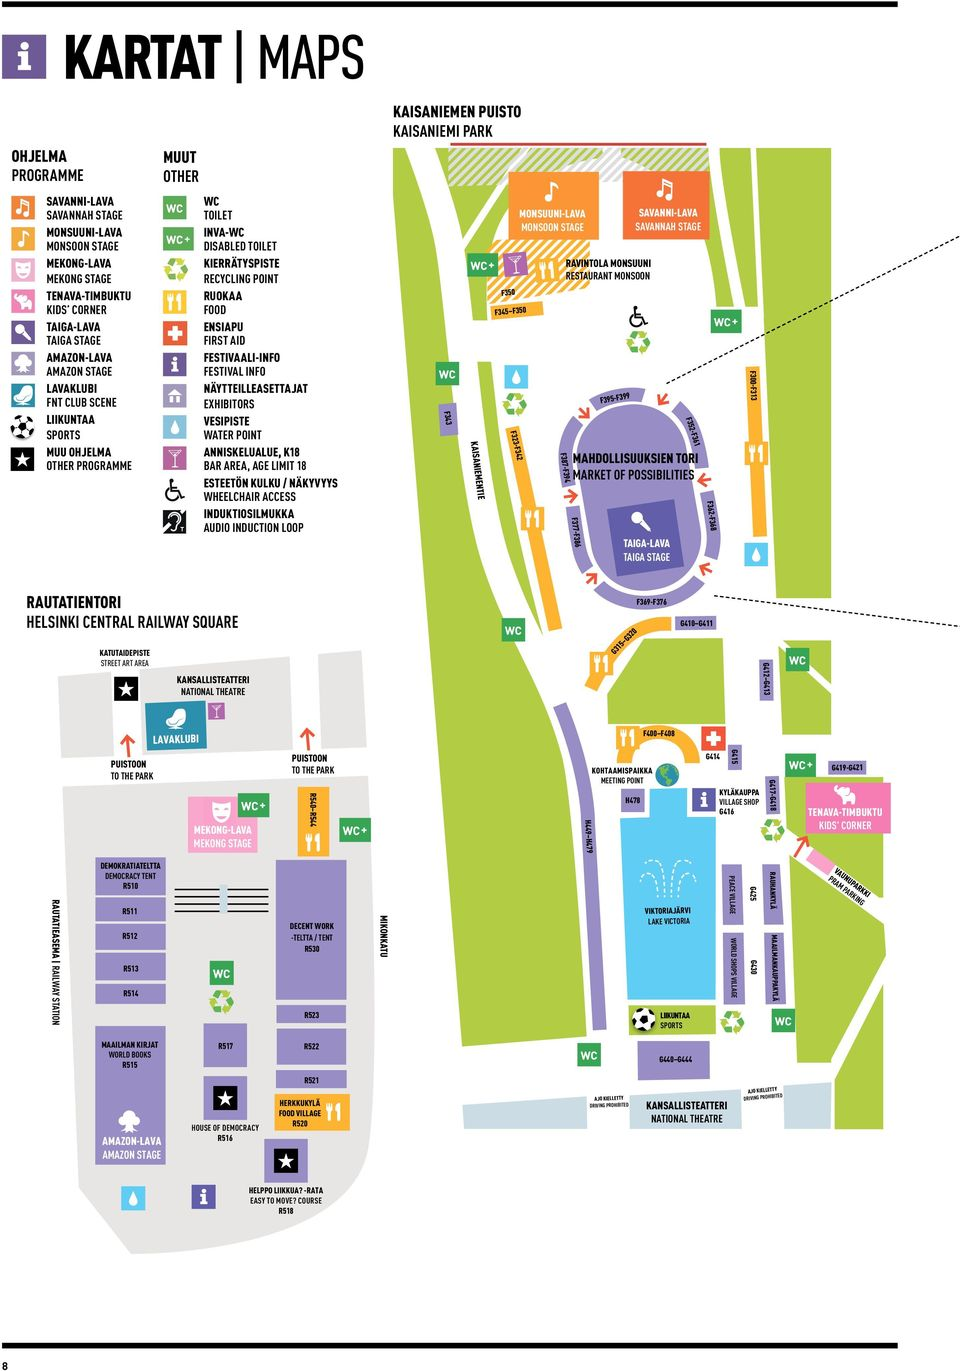 FESTIVAL INFO NÄYTTEILLEASETTAJAT EXHIBITORS VESIPISTE WATER POINT ANNISKELUALUE, K18 BAR AREA, Age limit 18 esteetön kulku / näkyvyys wheelchair access induktiosilmukka audio induction loop